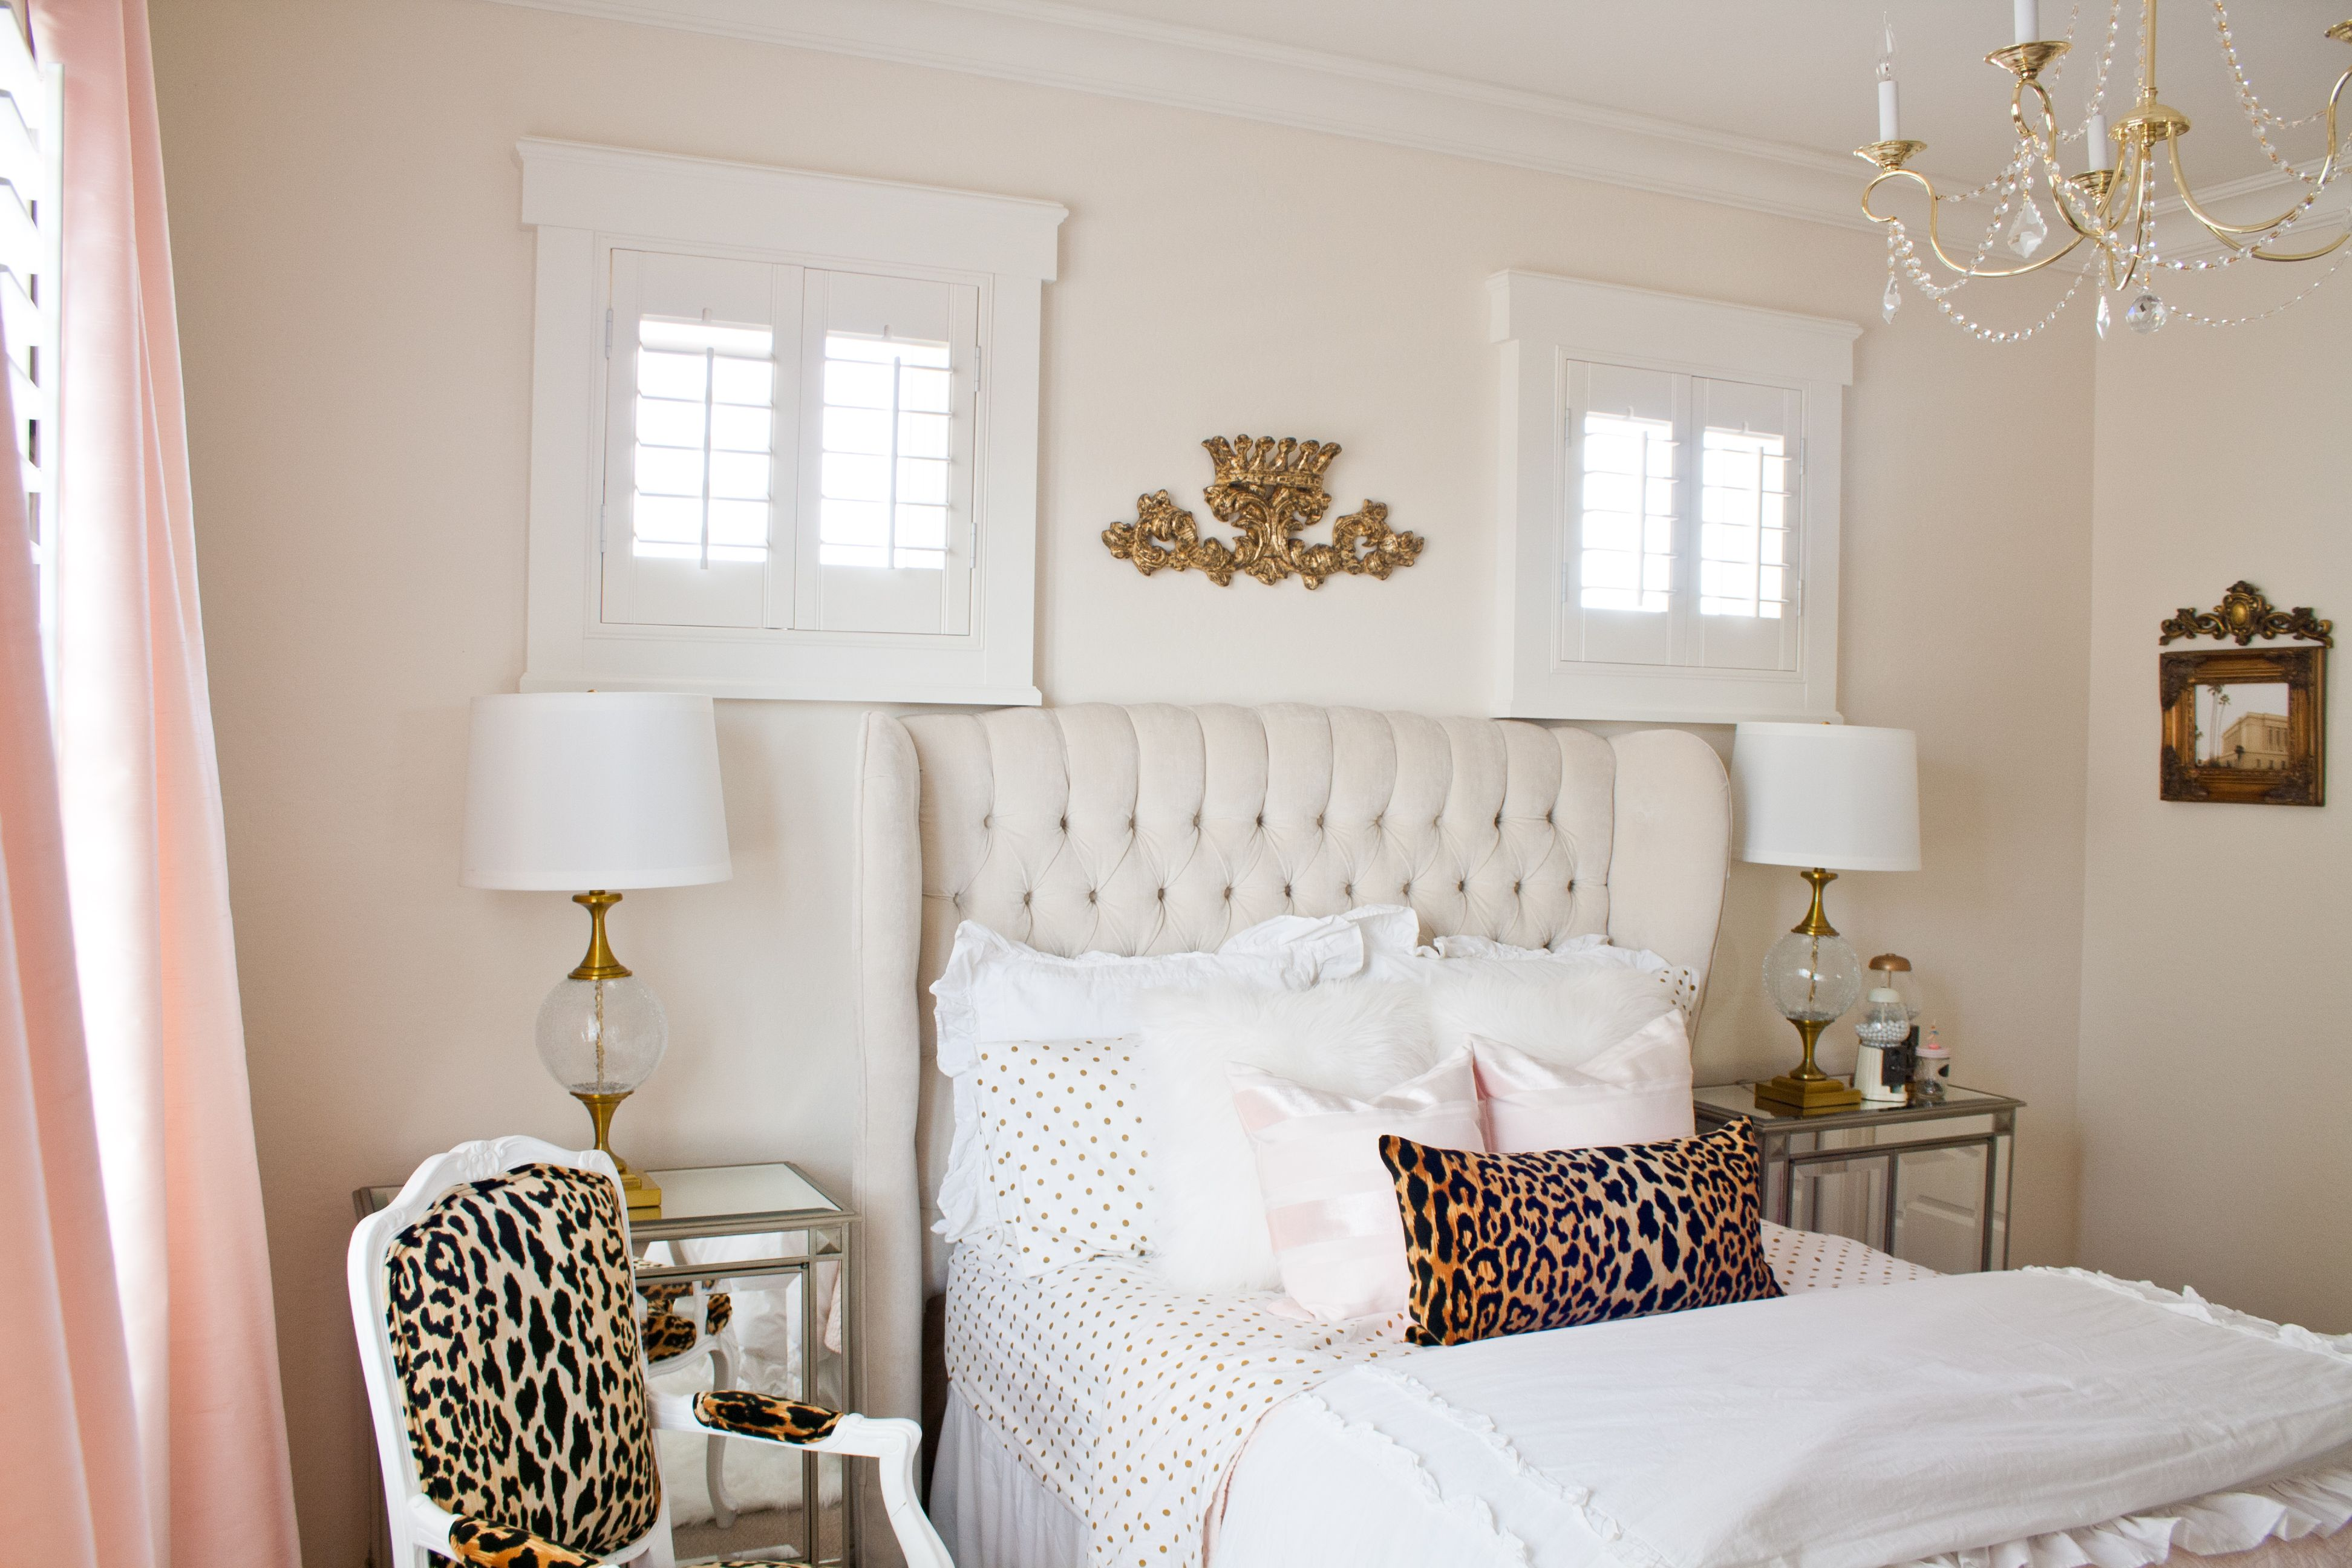 Pink and gold bedroom by Randi Garrett Design with leopard chair